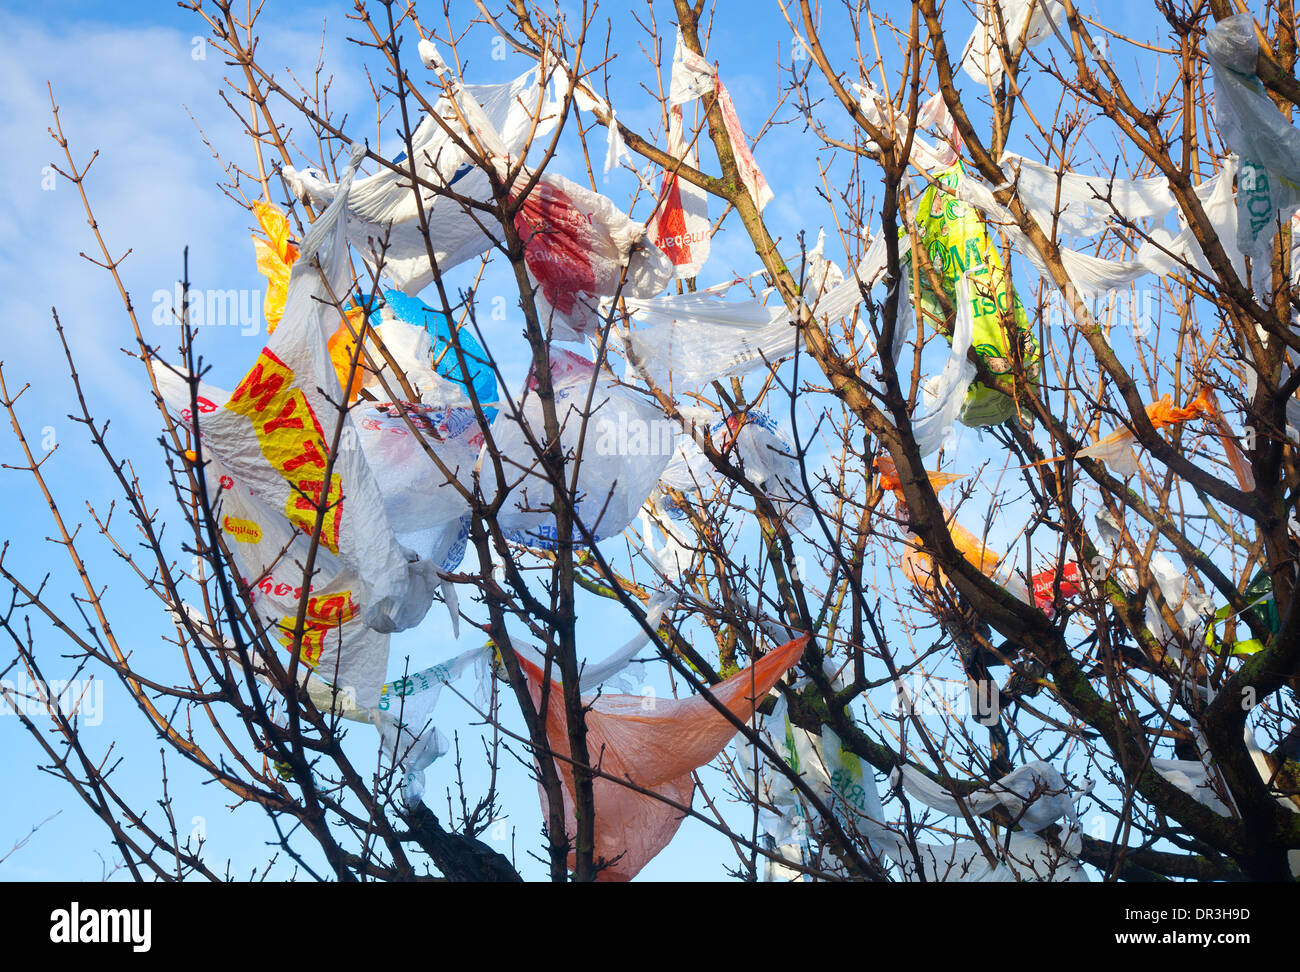 "Southport, Merseyside, UK. 19th January, 2014.  UK Weather. Swirling winds and blustery conditions around the Tesco recycling bays at Kew, deposit, adorn and festoon nearby trees with a myriad of varied plastic bags that have escaped caught seemingly forever in the unreachable tree branches, littering the landscape with the detritus of our inconsiderate waste.   In some countries people ironically refer to plastic bags caught in fences and trees as the ""national flower', whereas in the UK they are known as ""witches' britches"". - Stock Image"